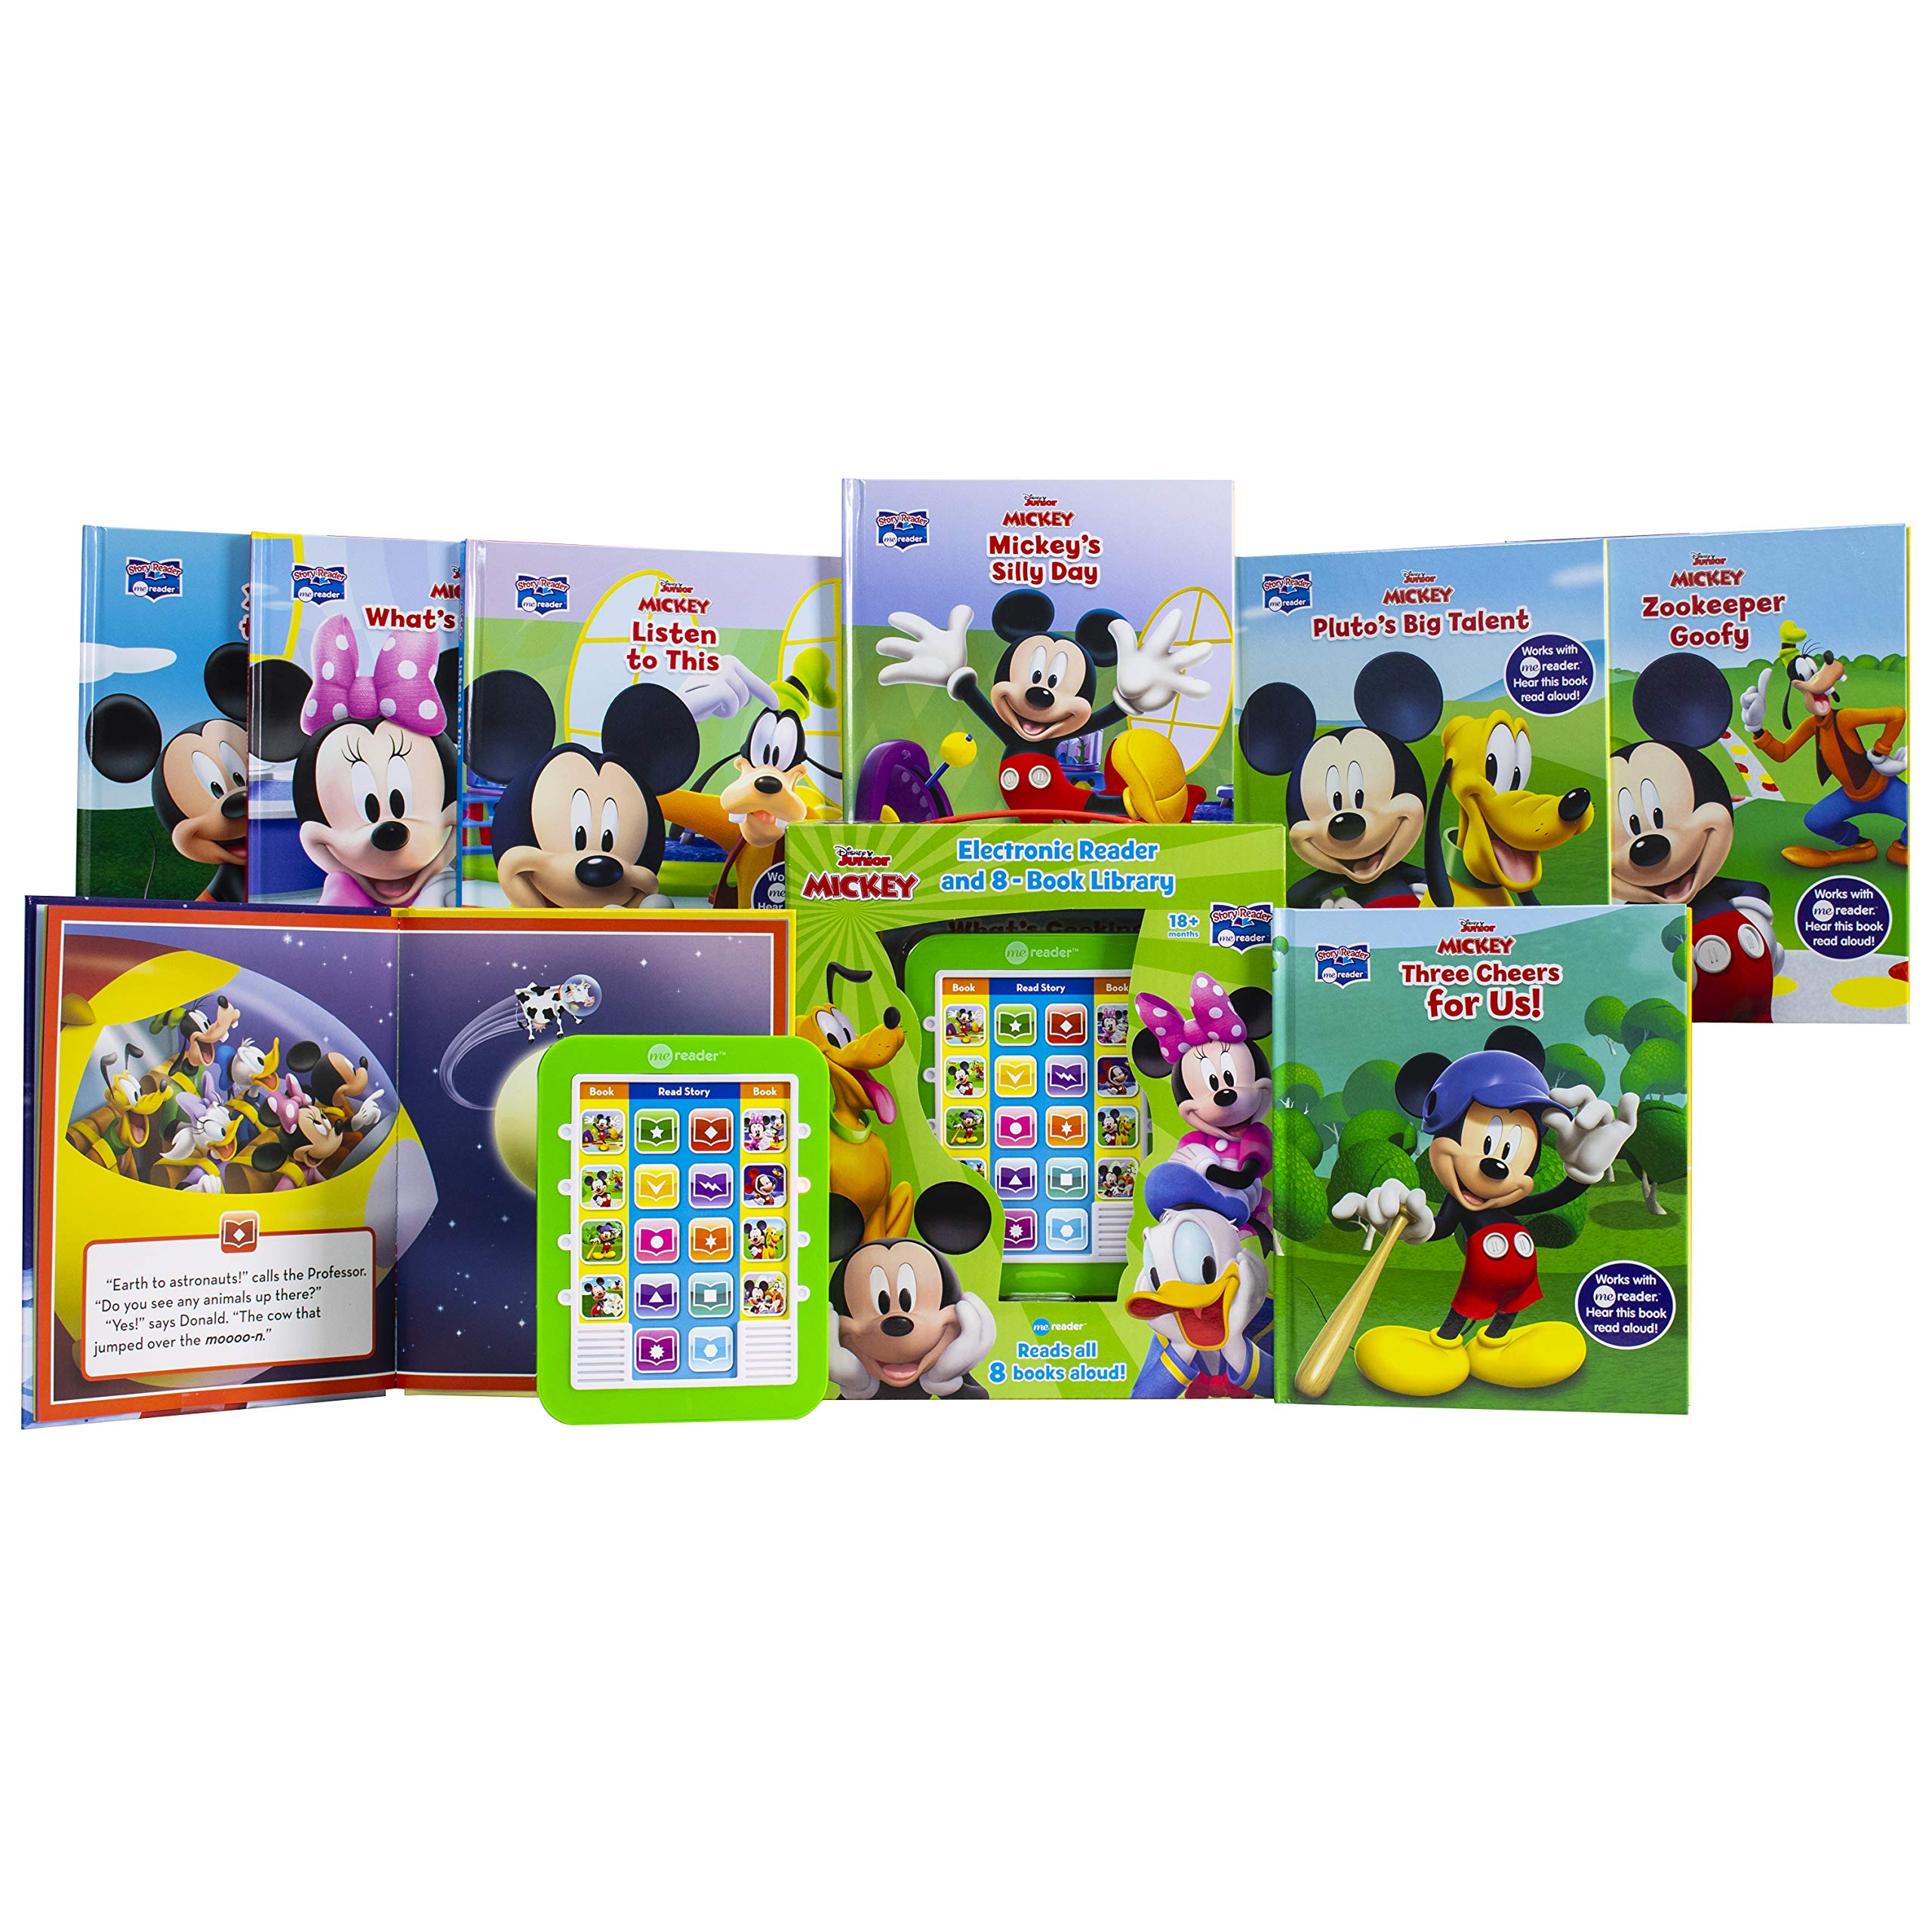 Disney Mickey Mouse - Me Reader Electronic Reader 米奇故事電子閱讀器連八本書套裝